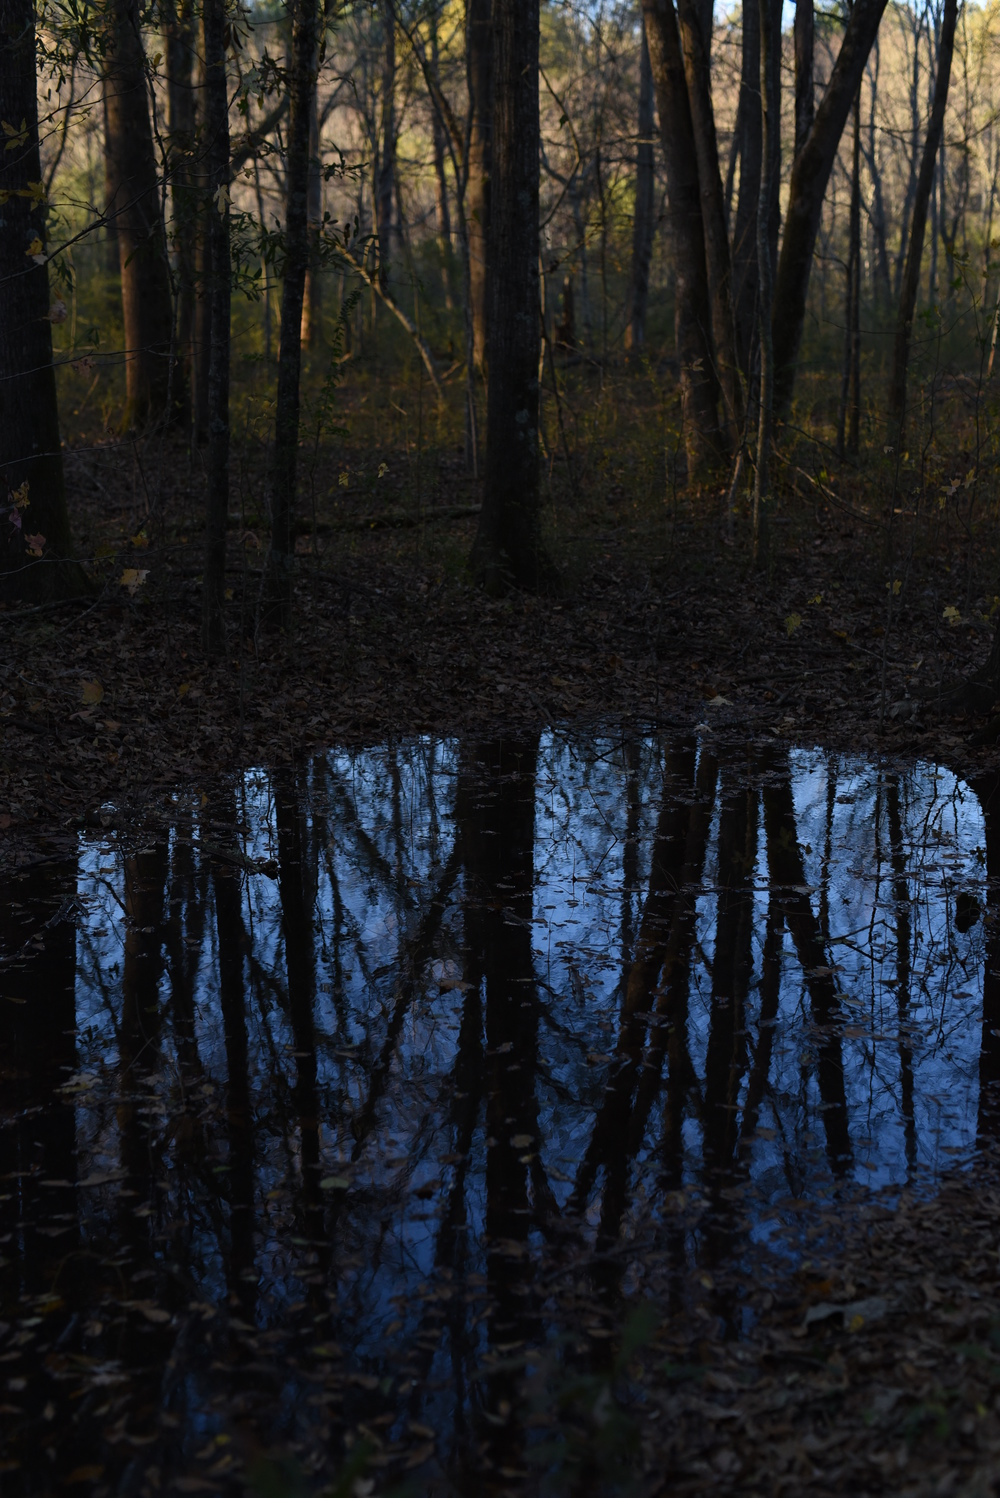 reflection-of-trees.jpg